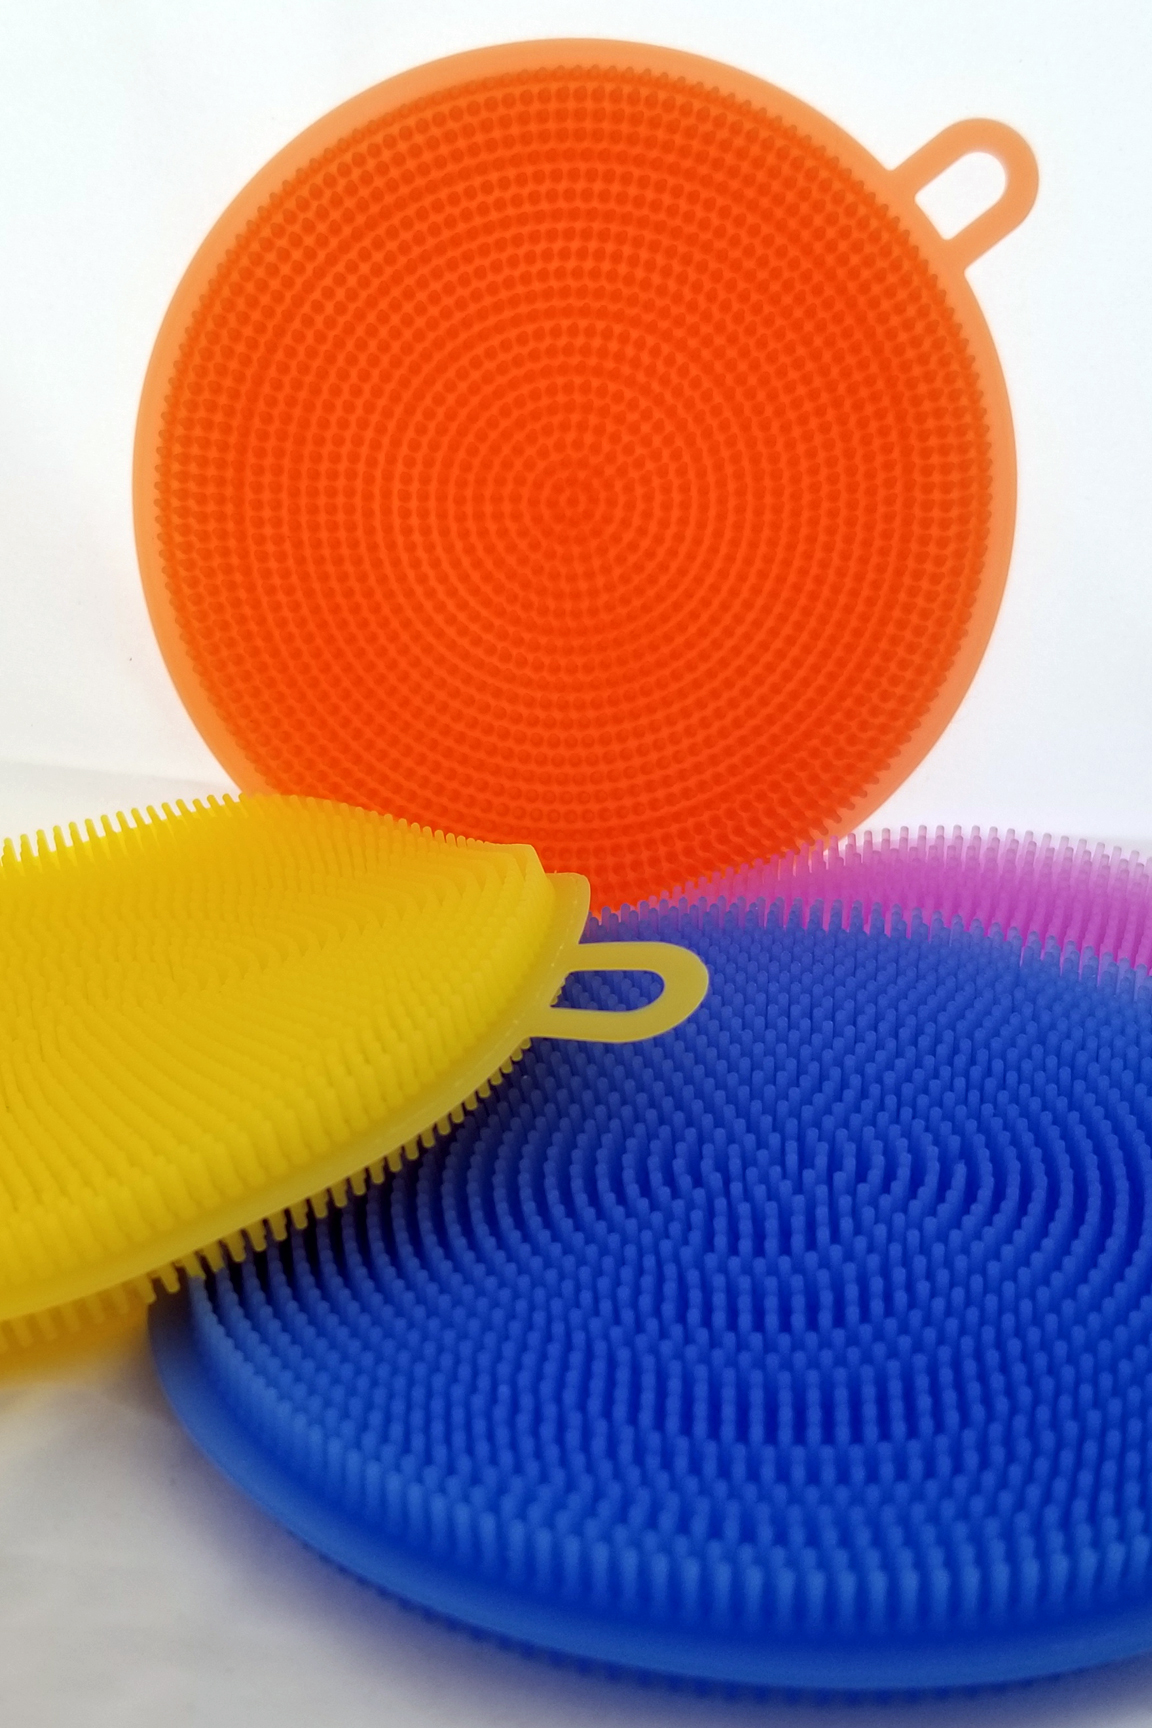 Thousands of gentle silicone scrubbers.